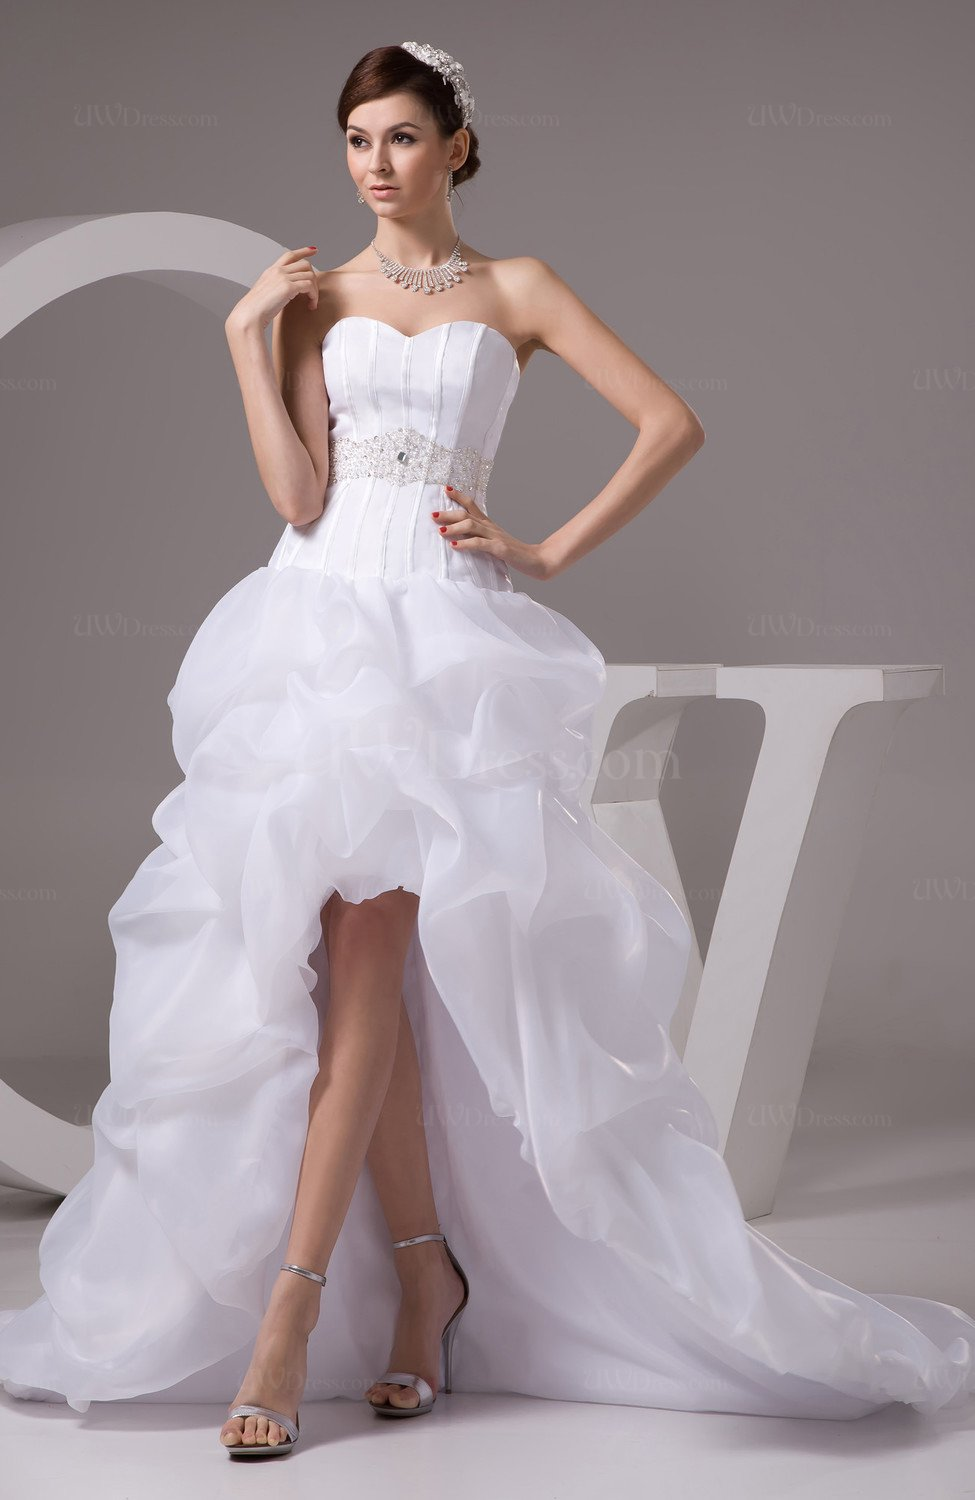 White Allure Bridal Gowns Inexpensive Western Knee Length Strapless ...